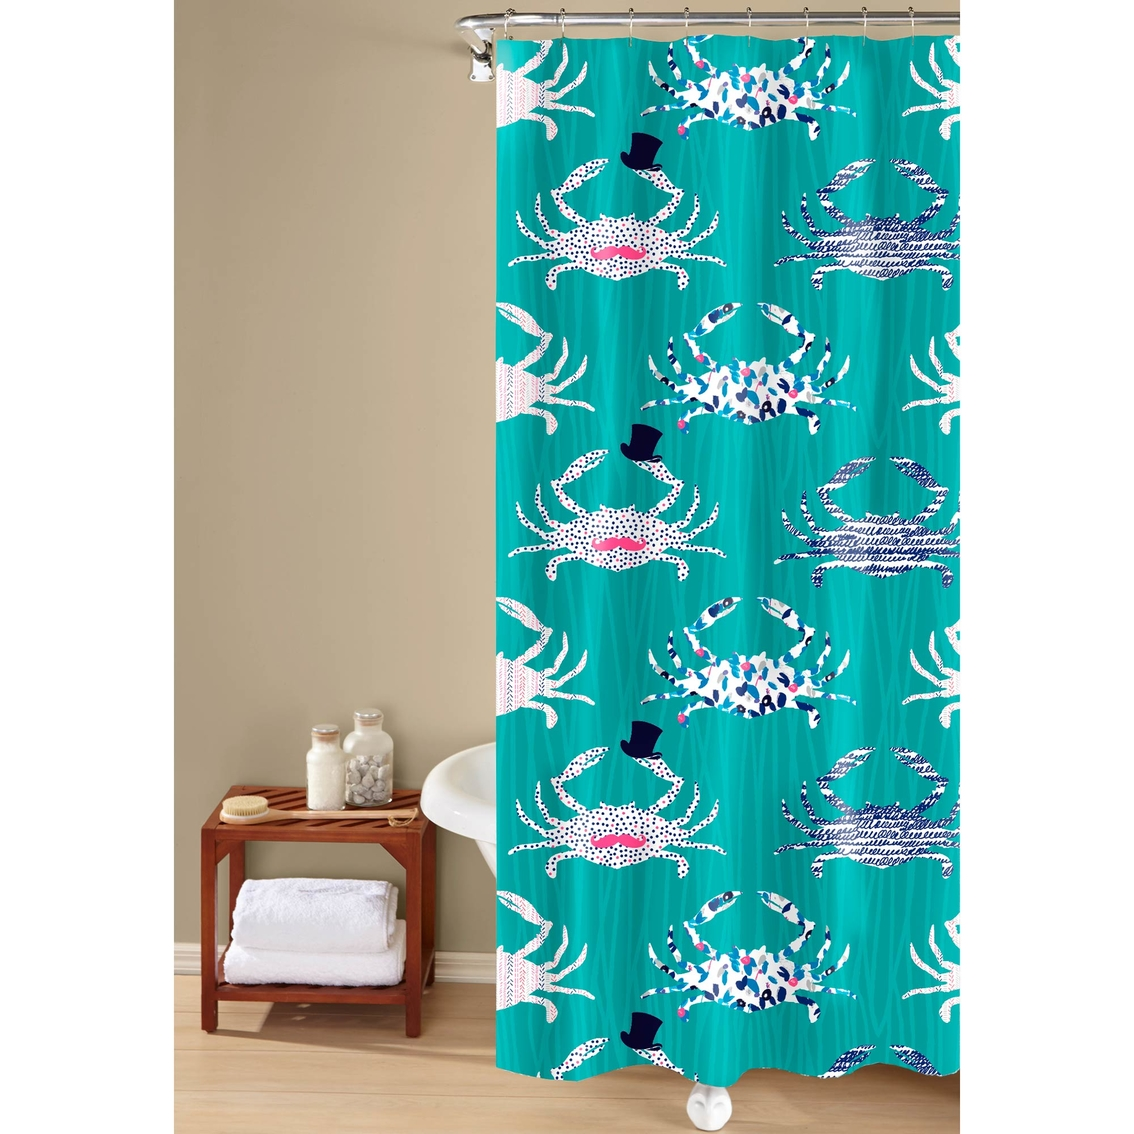 Whimsical Printed Crab Shower Curtain